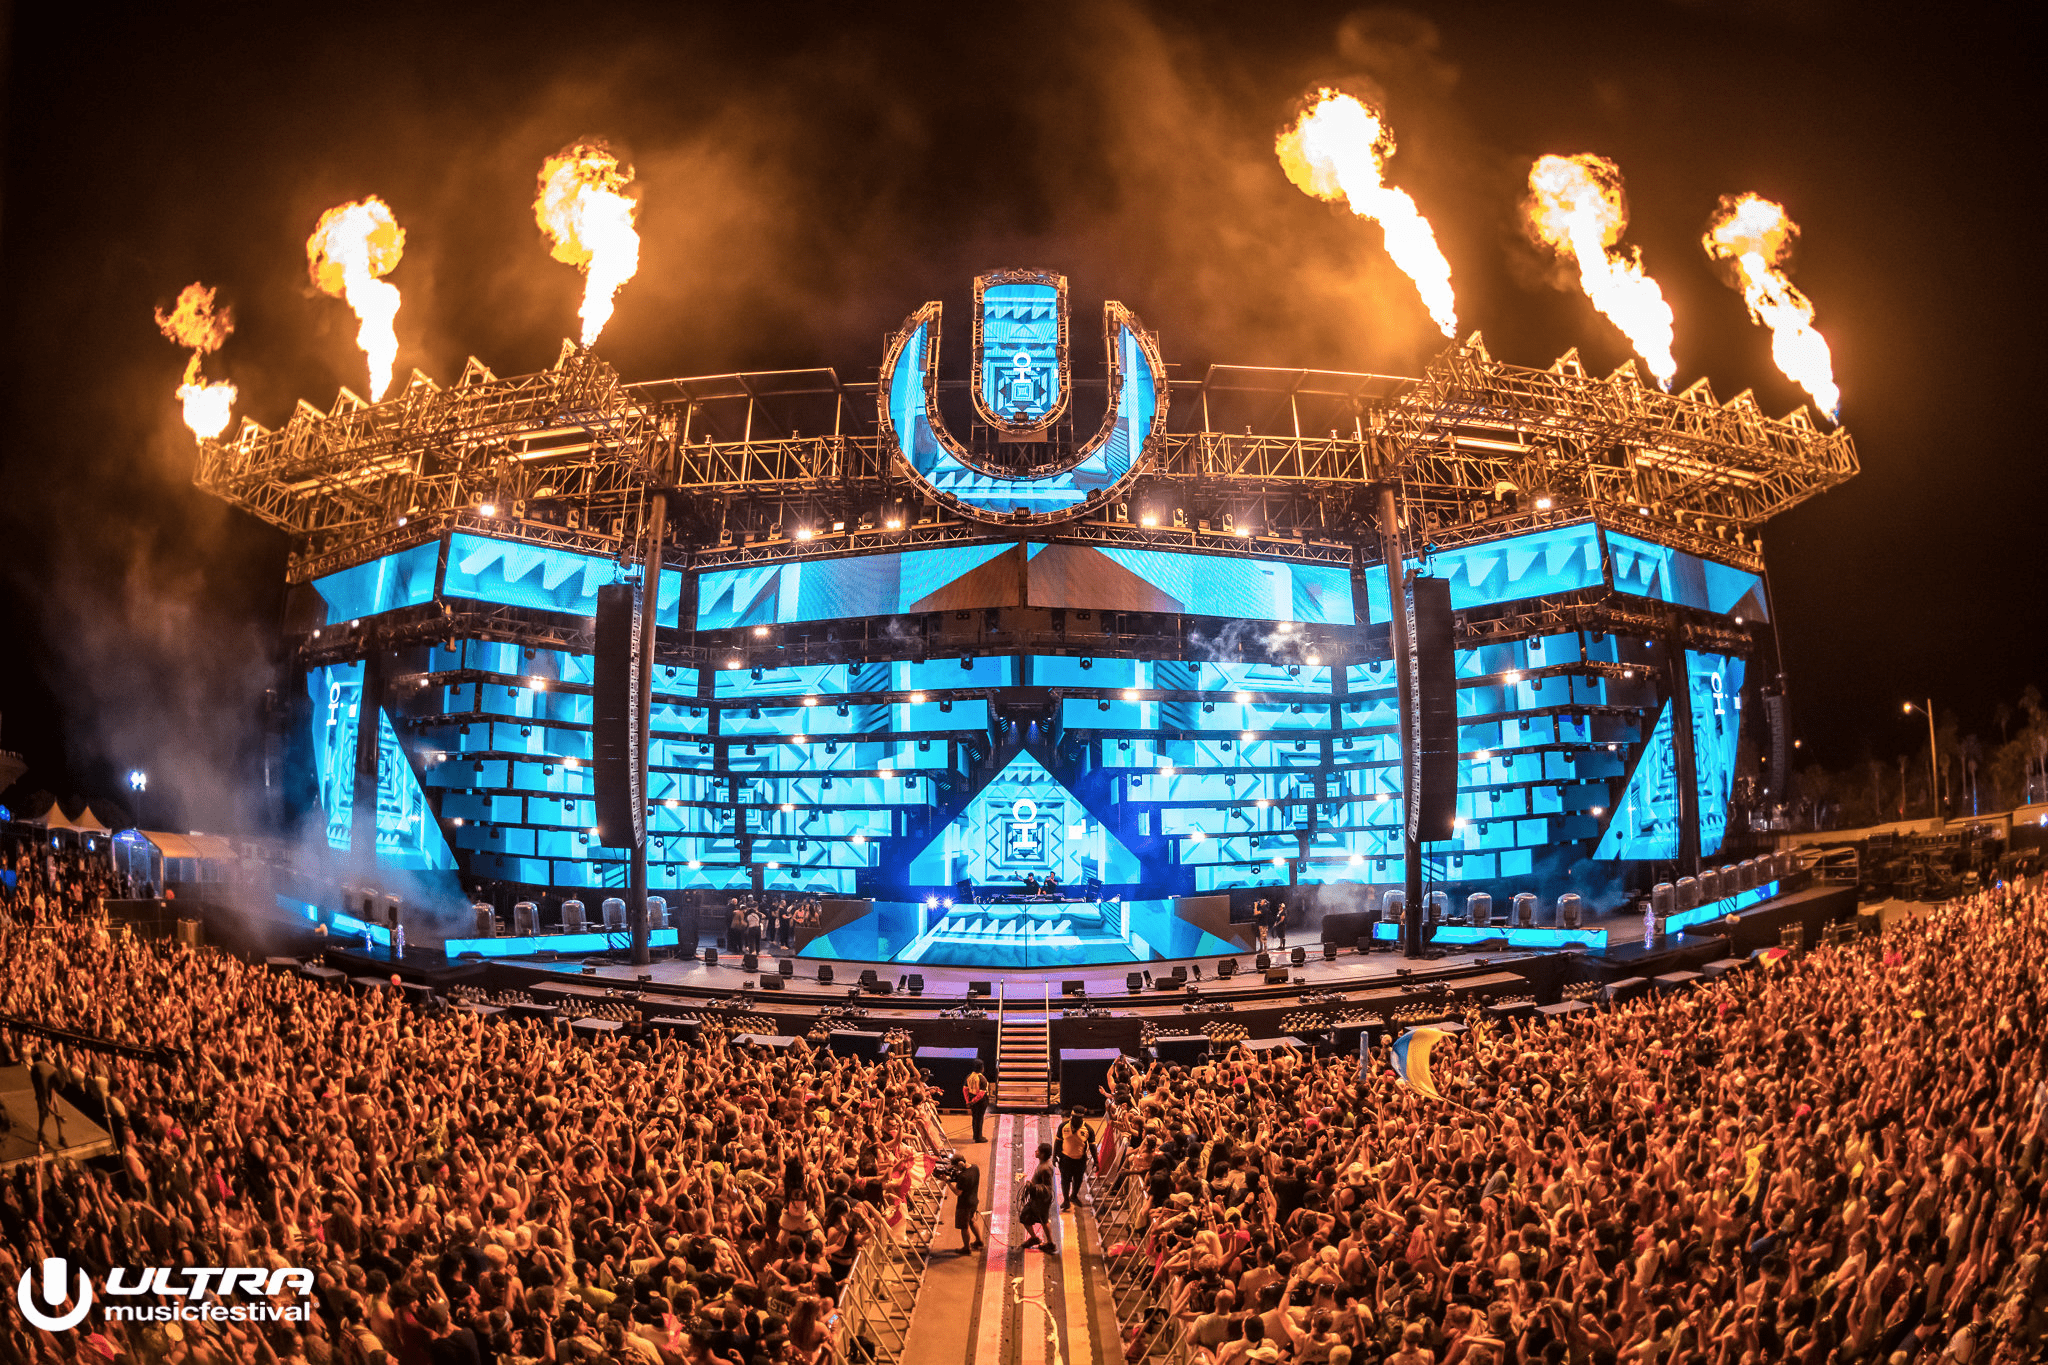 ULTRA Music Festival 2019 wraps 21st Edition with sold out Miami Marine Stadium & Historic Virginia Key Beach Park Debut